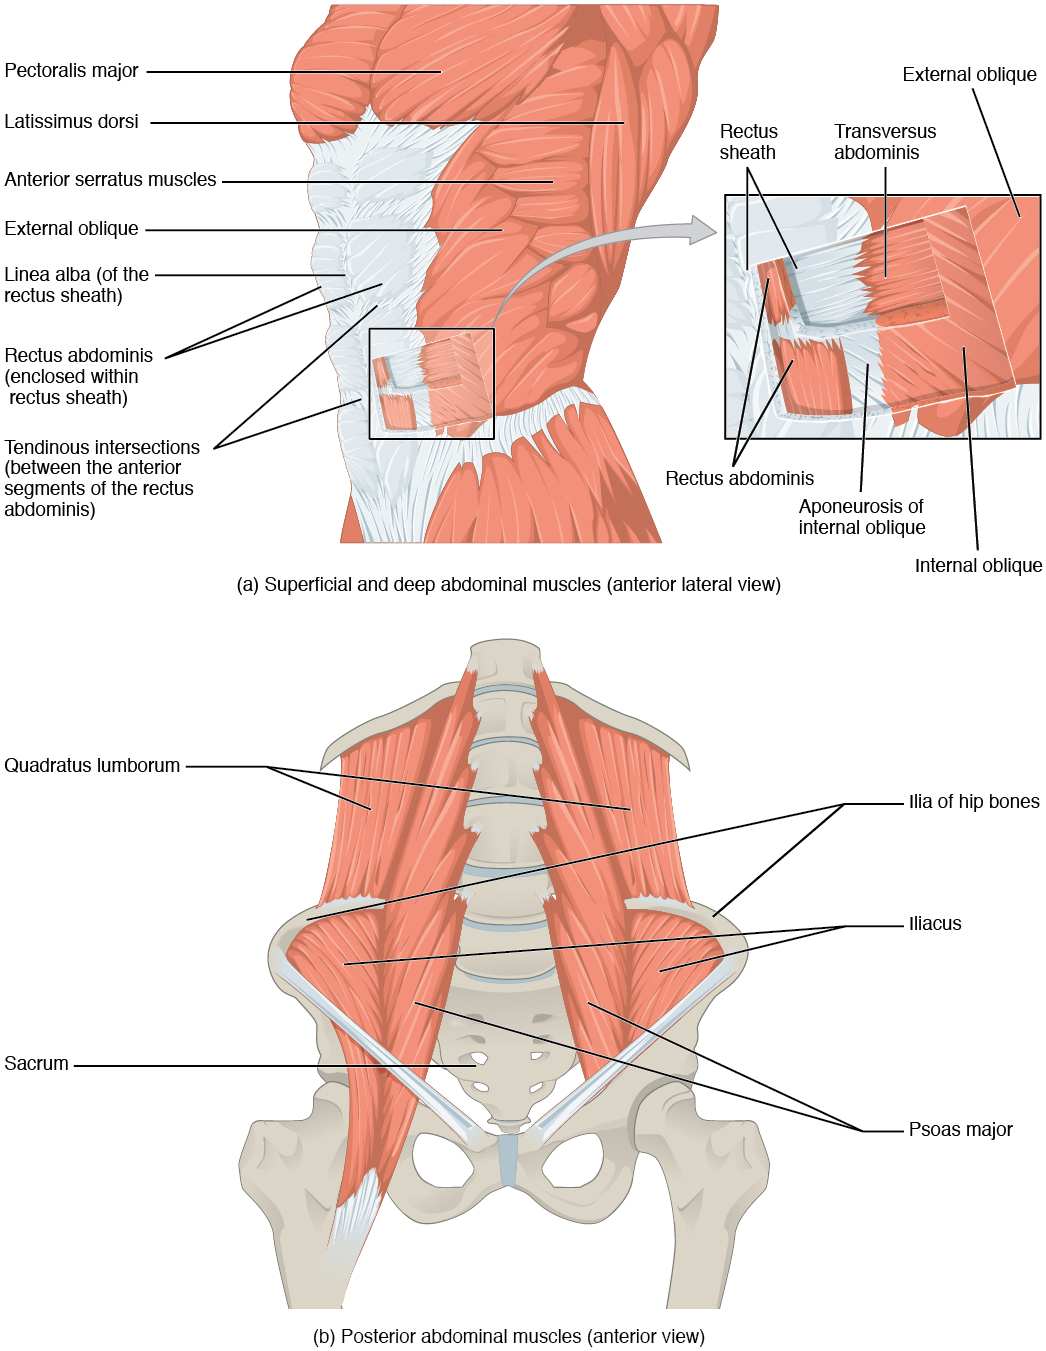 Axial Muscles Of The Abdominal Wall And Thorax Anatomy And Physiology